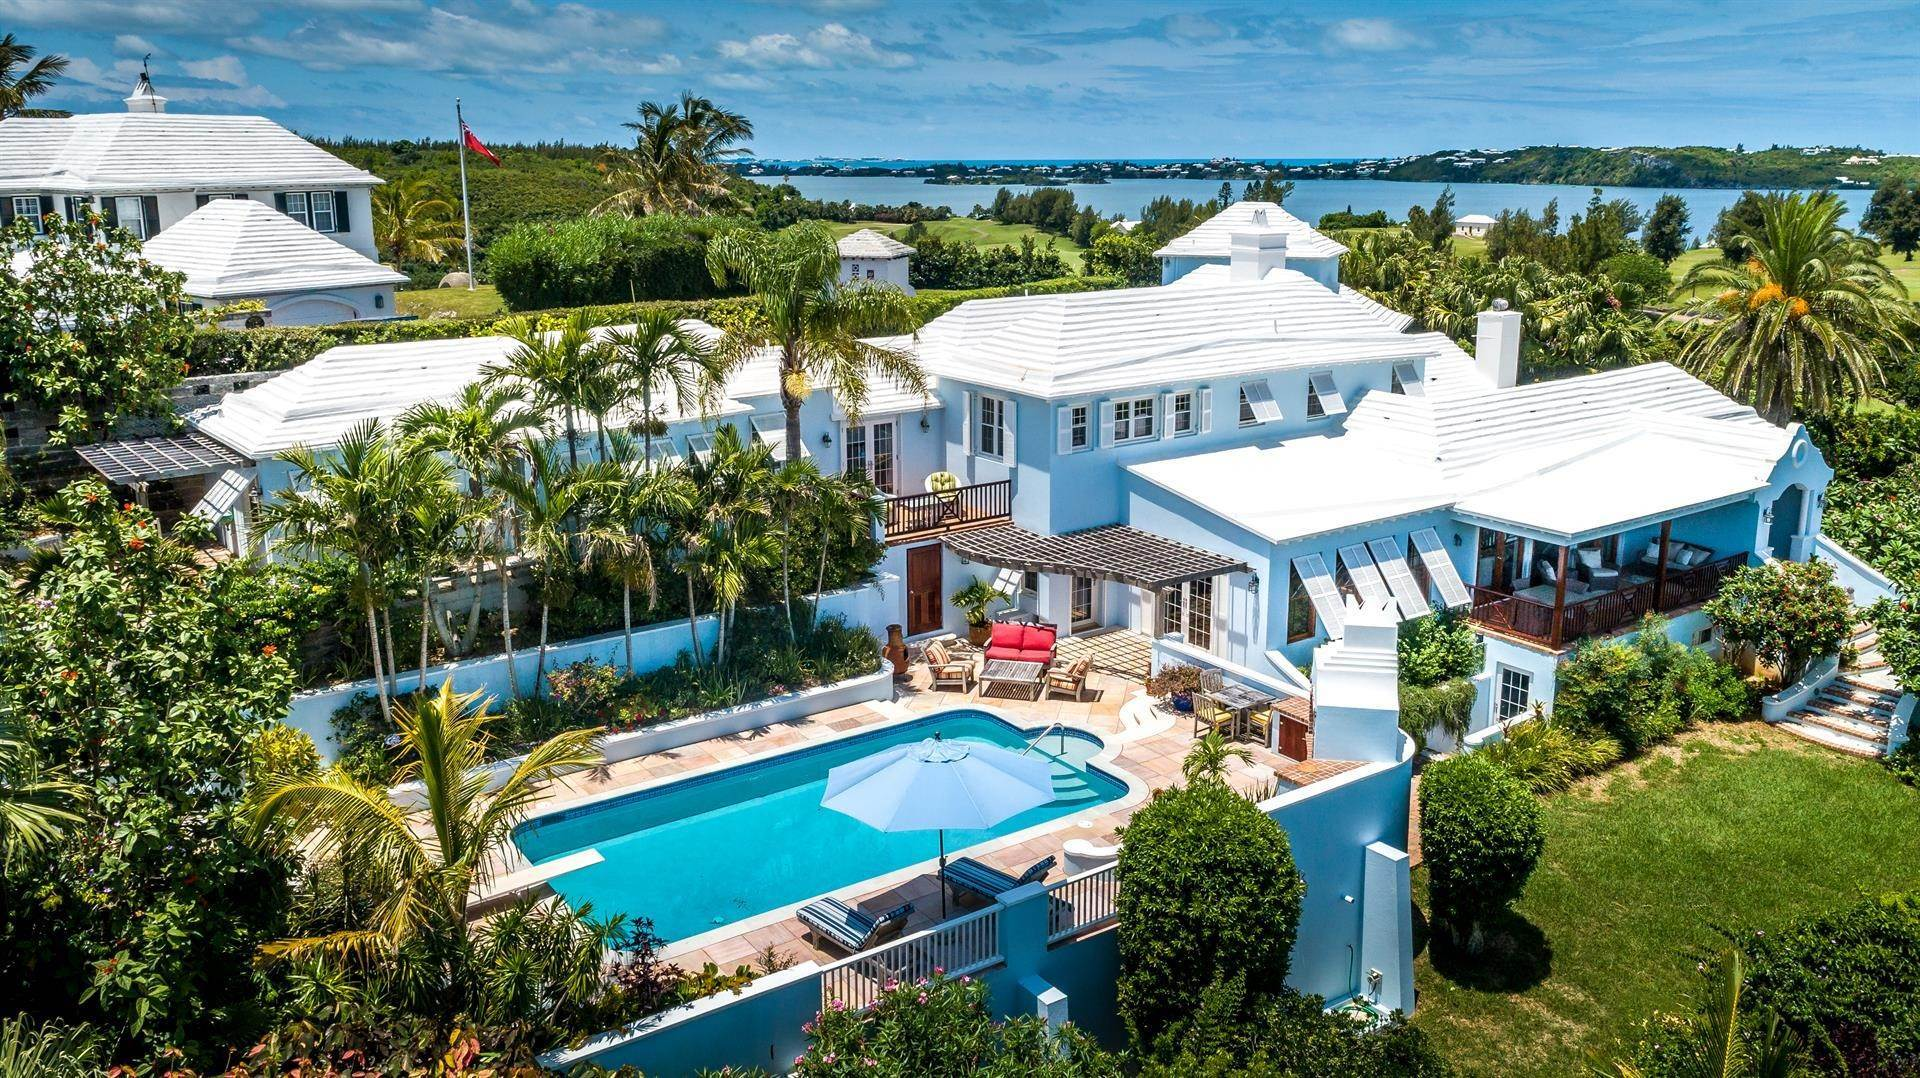 Single Family Homes için Satış at Tobermory In Tucker's Town Tobermory In Tucker's Town, ,Bermuda – Sinclair Realty